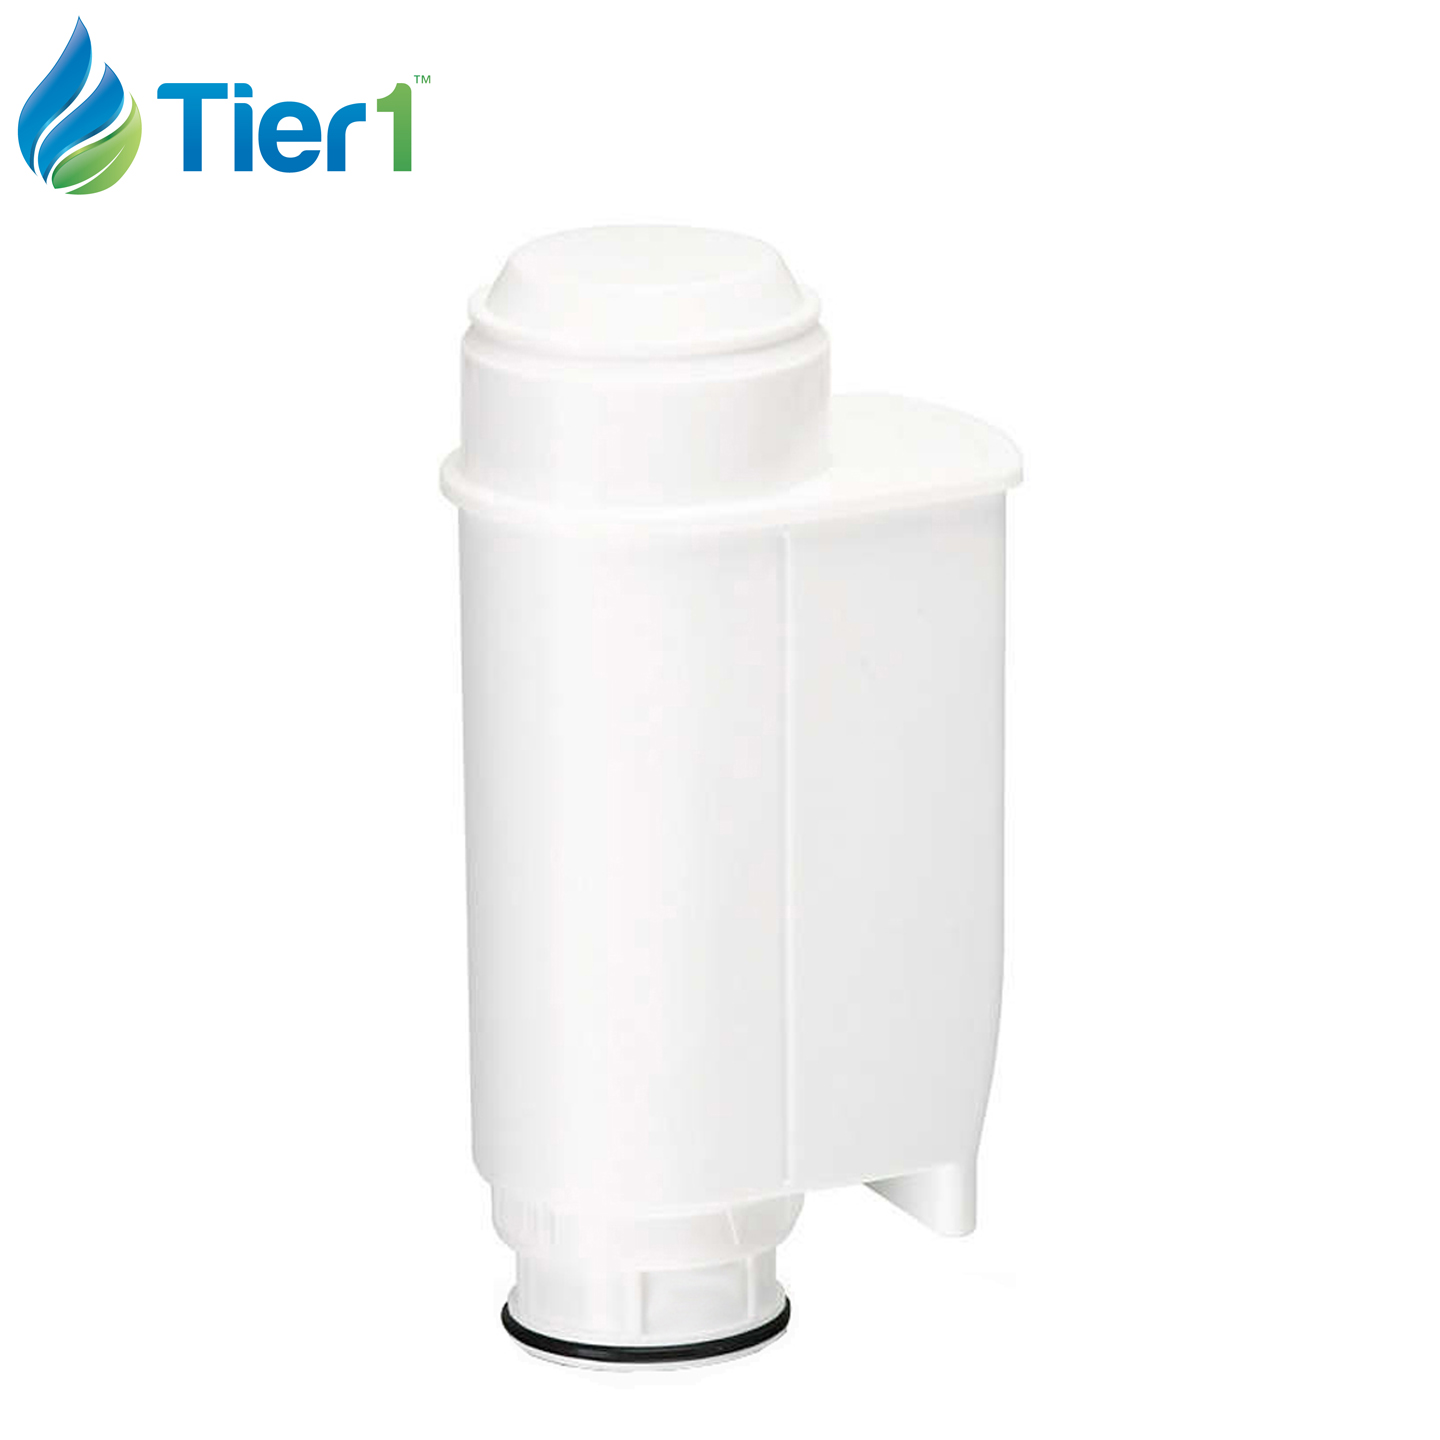 Tier1 Coffee Water Filters